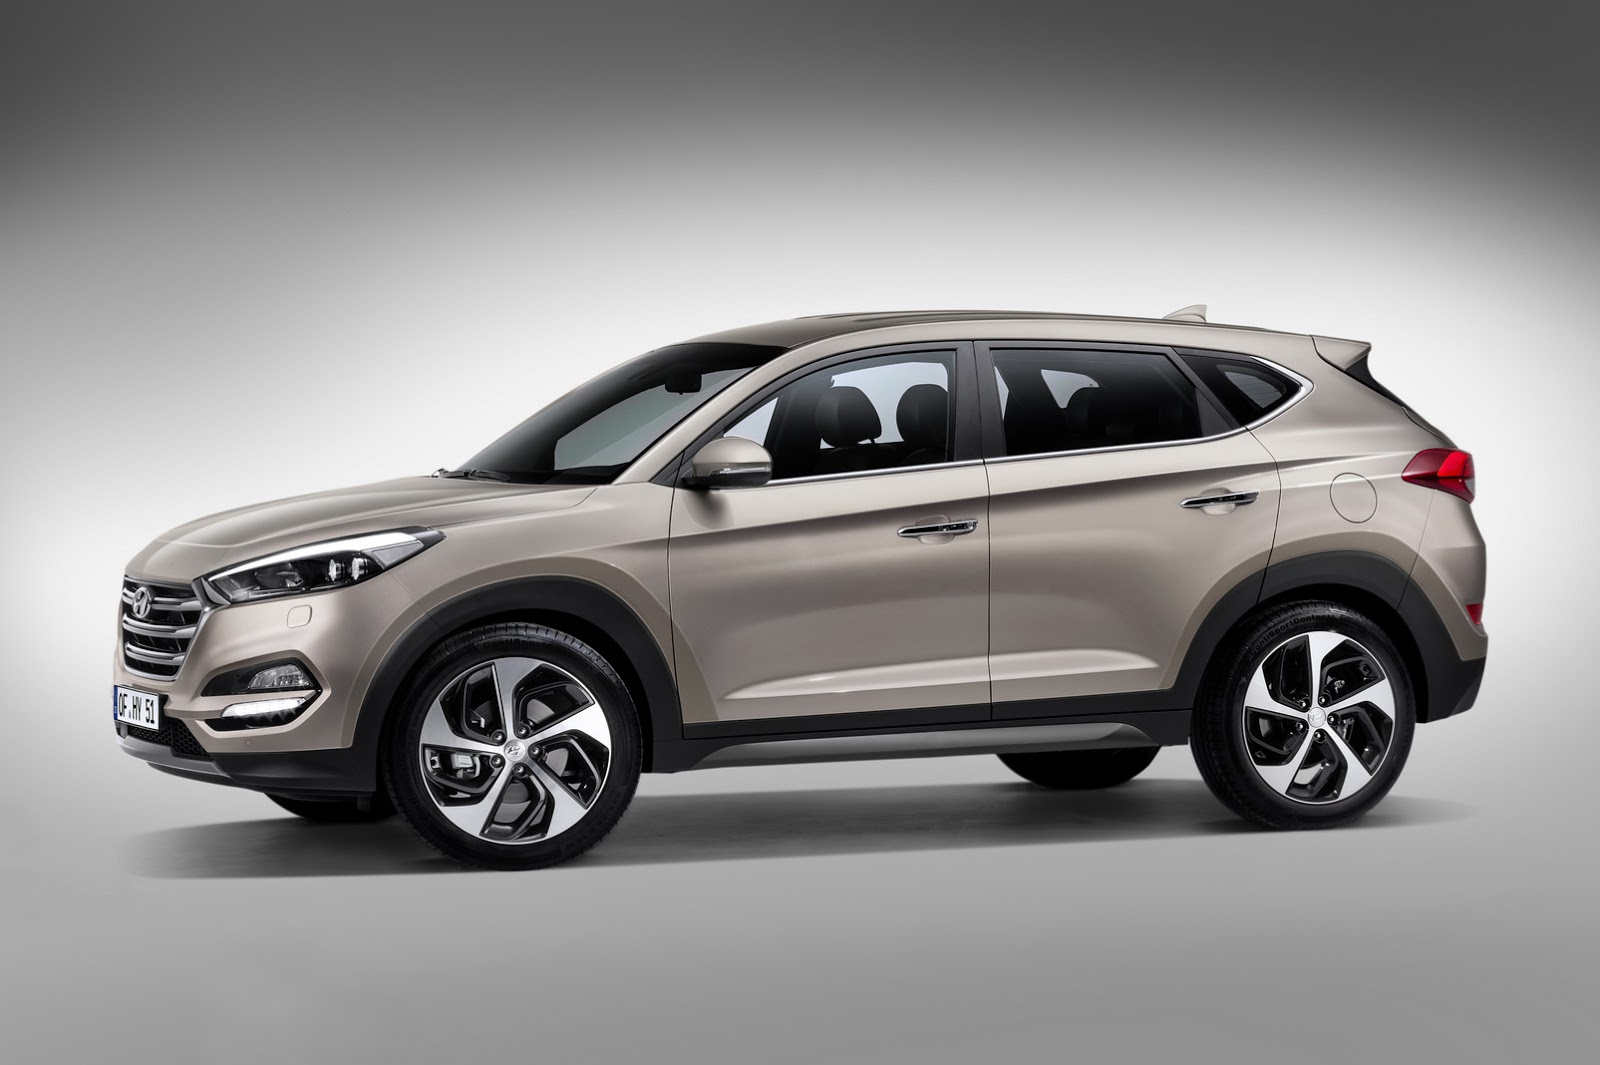 All New 2016 Hyundai Tucson Revealed With Stylish New